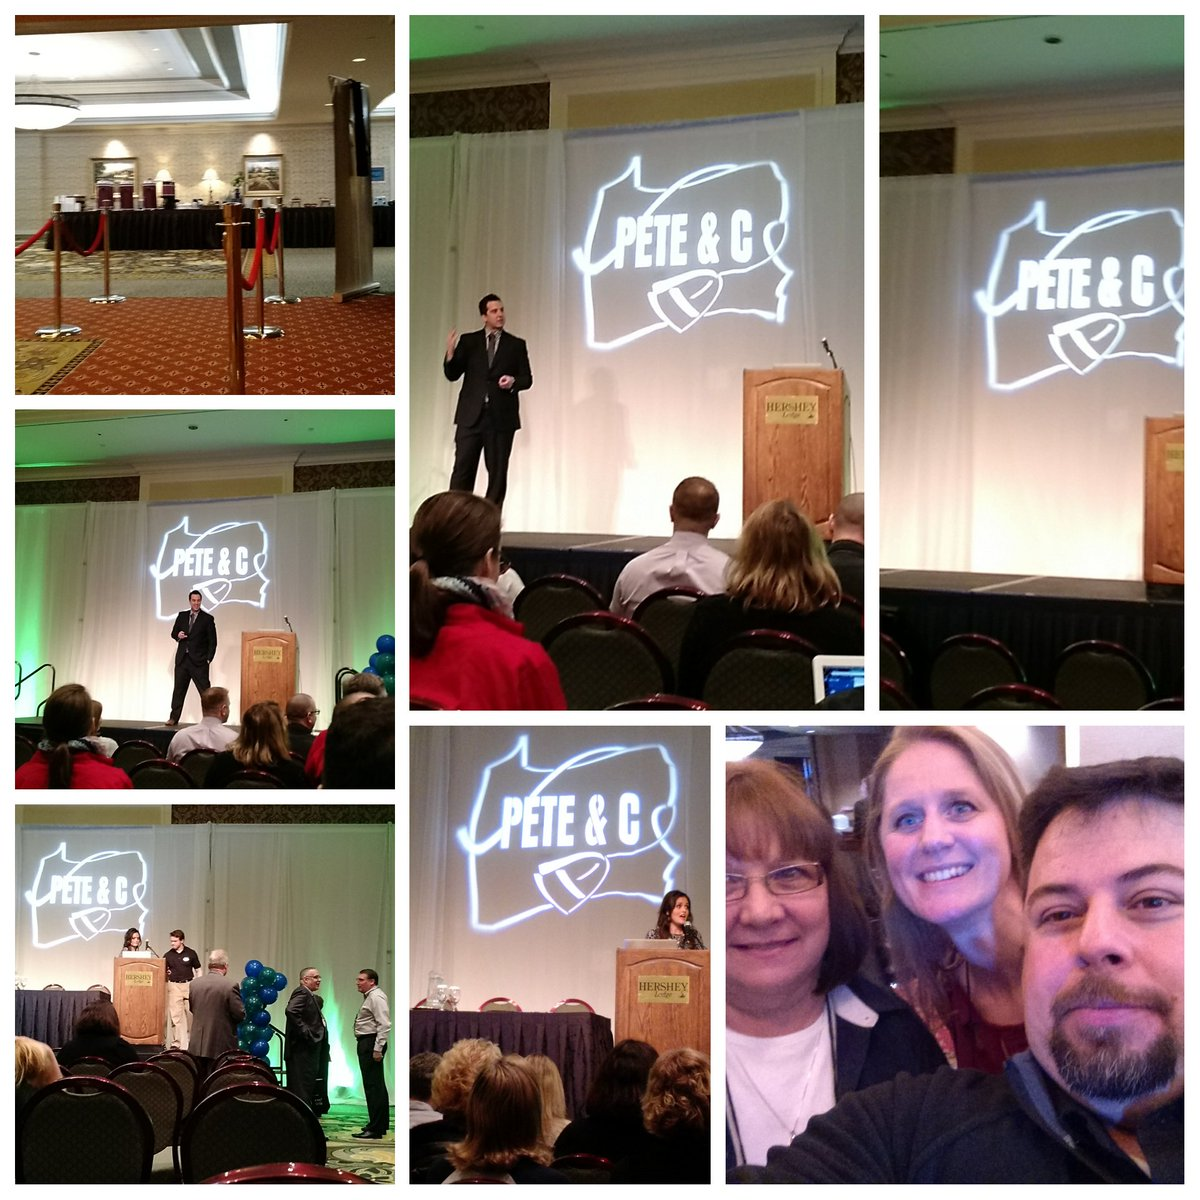 Remembering the first two days at #pete2016 https://t.co/rBMhRTc6mH